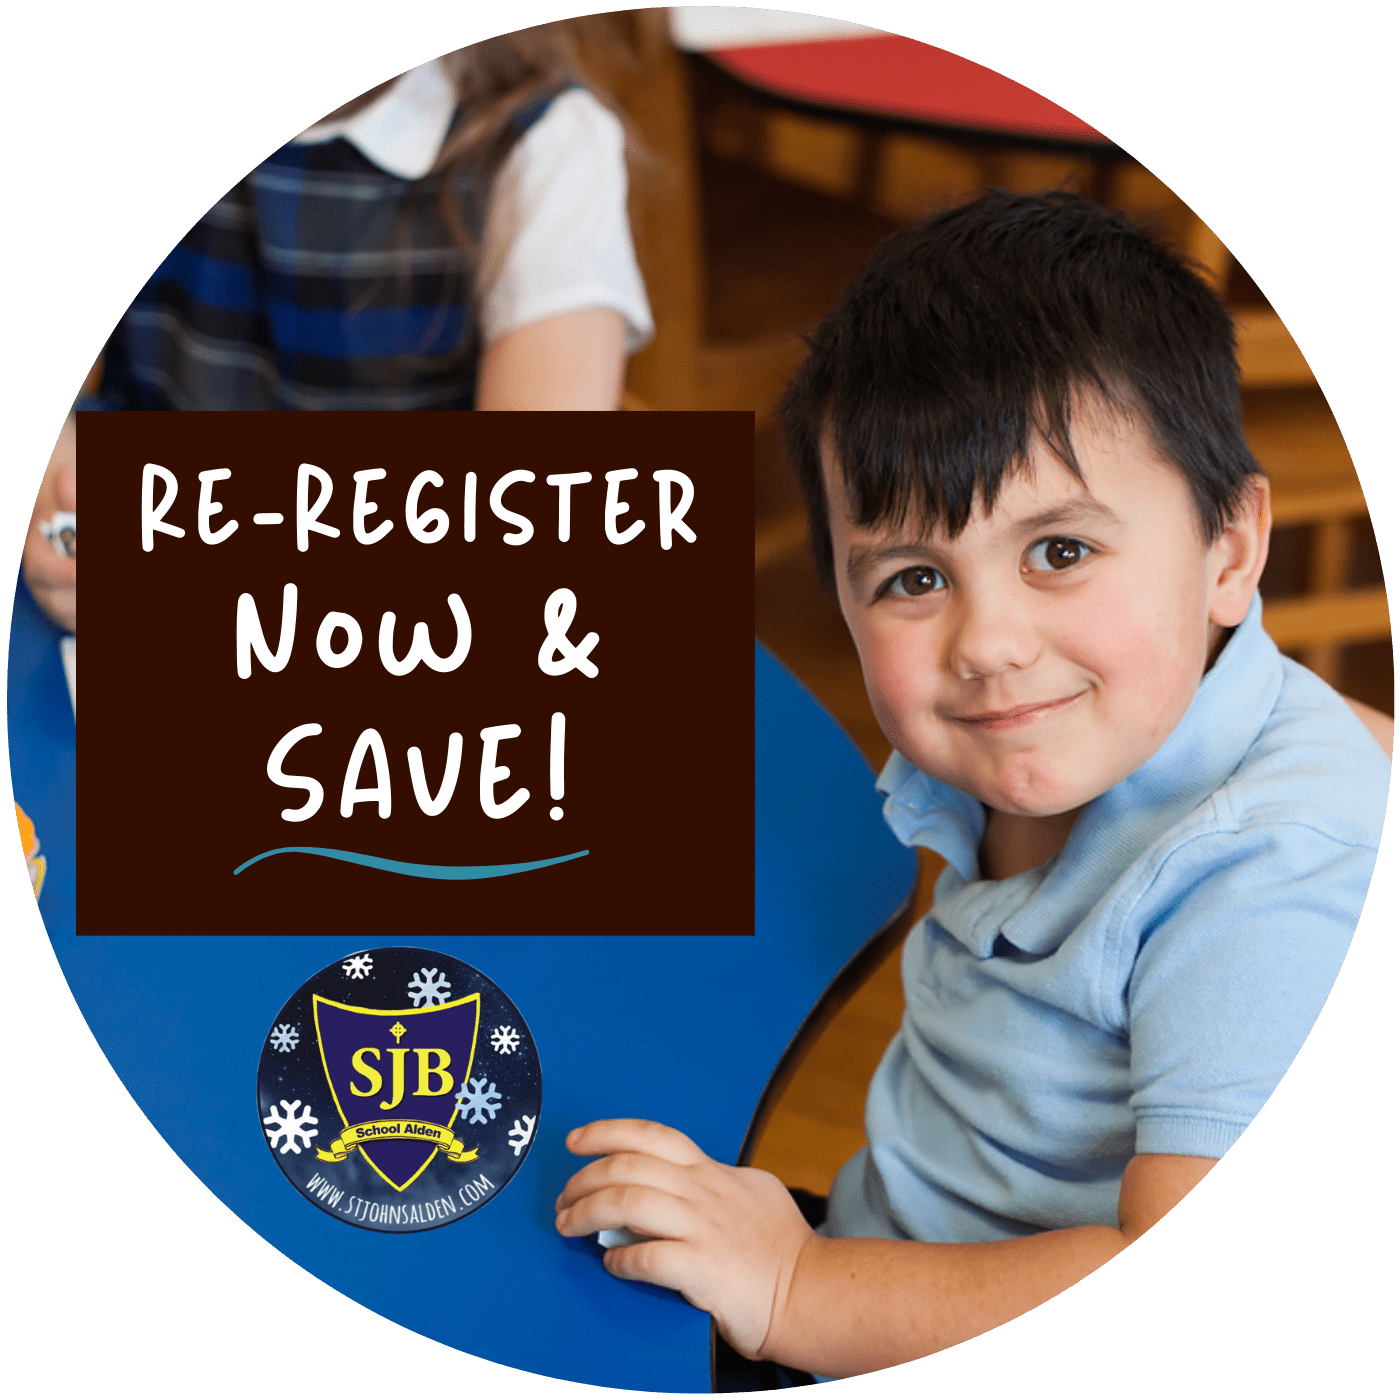 Re-Register Now & Save